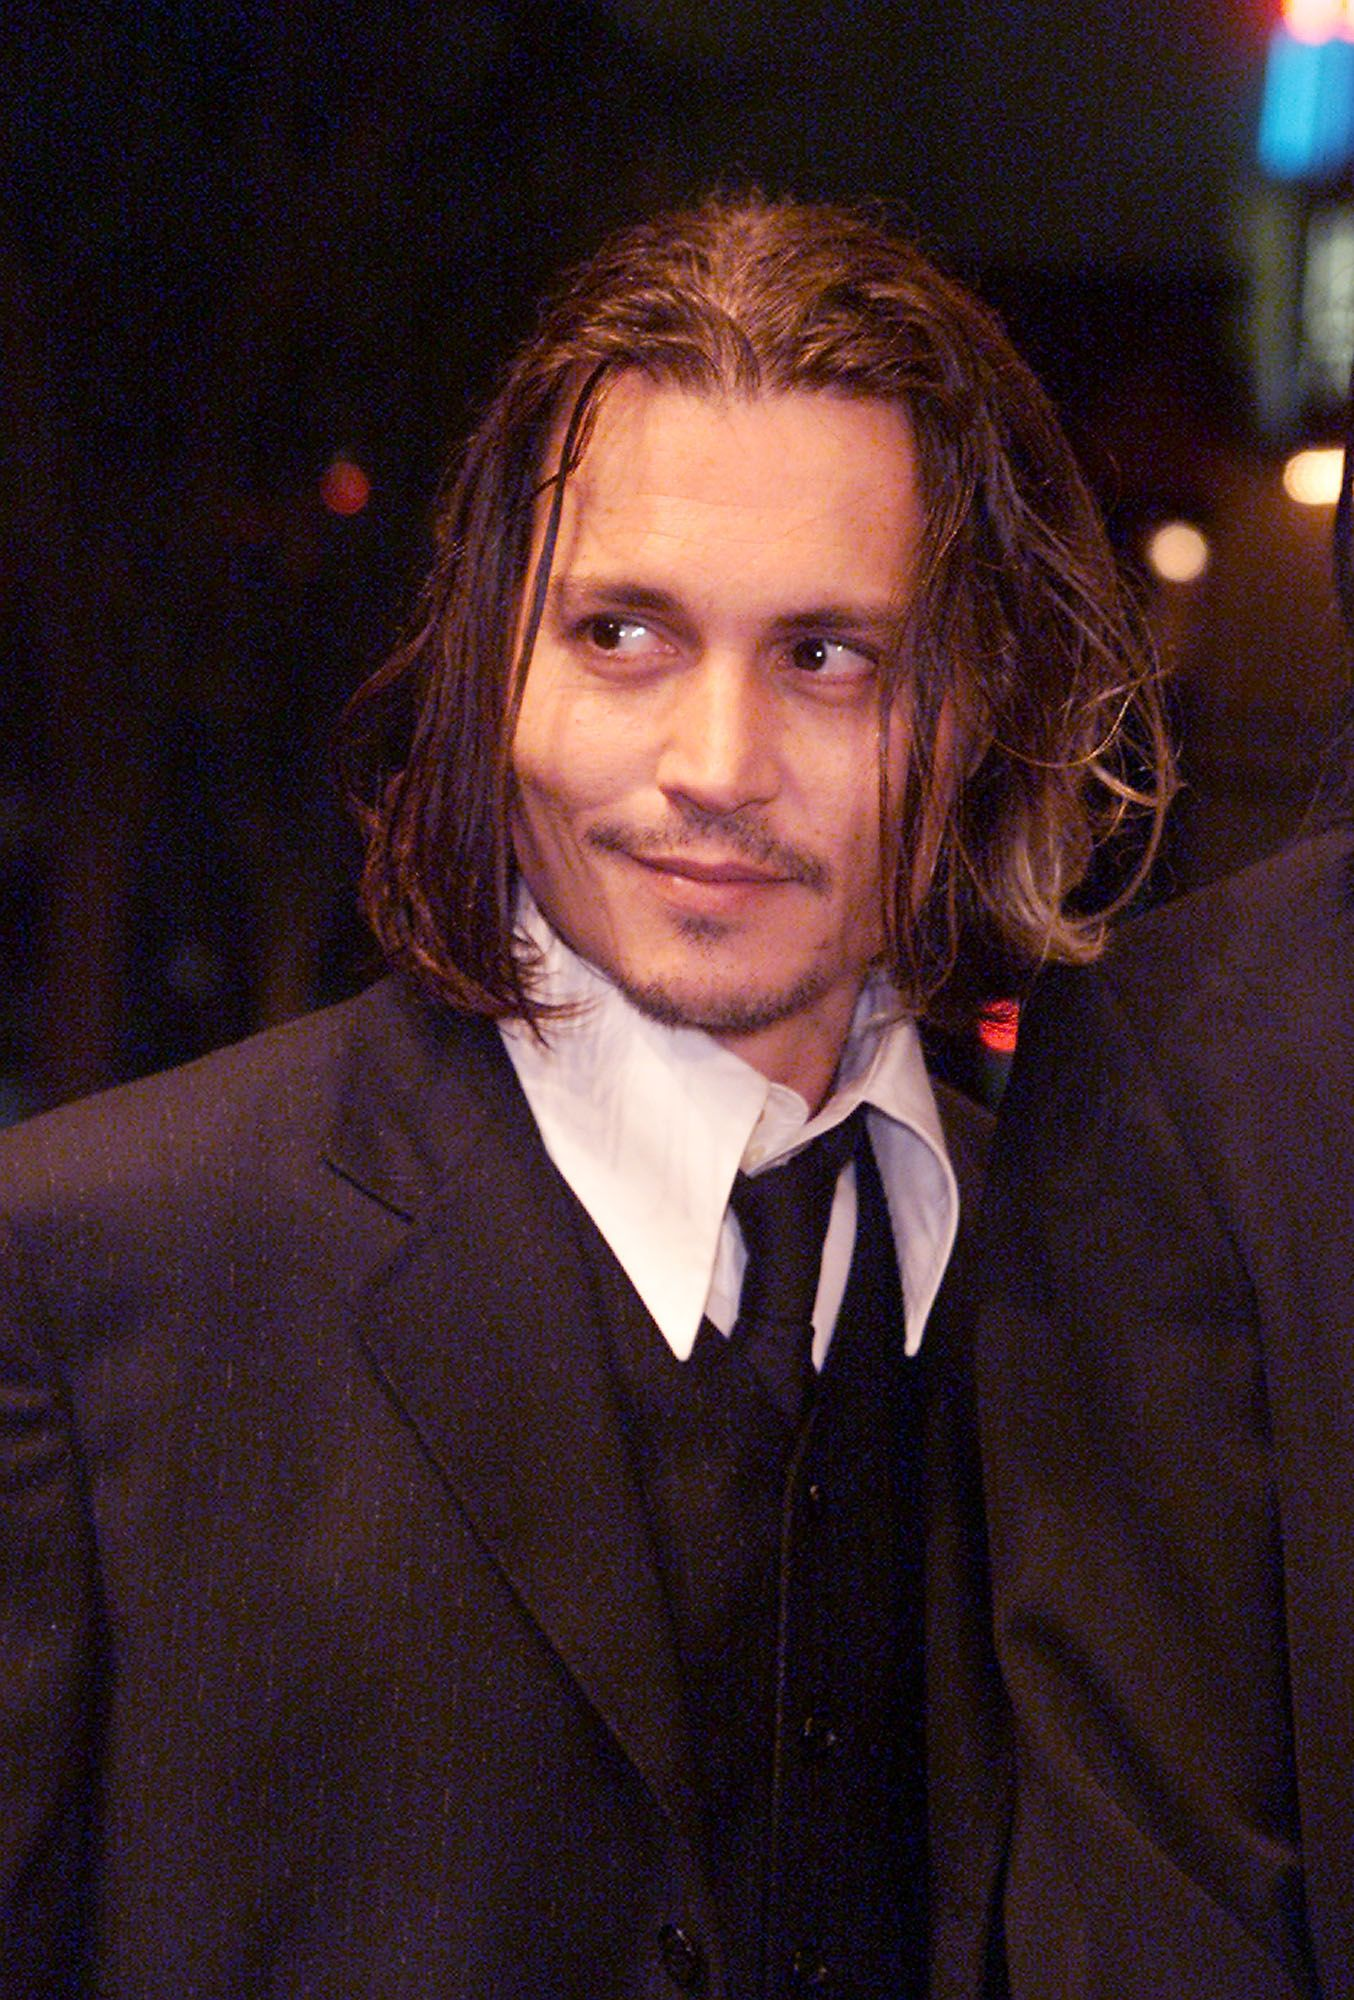 Johnny Depp didn't like all his roles / Getty Images